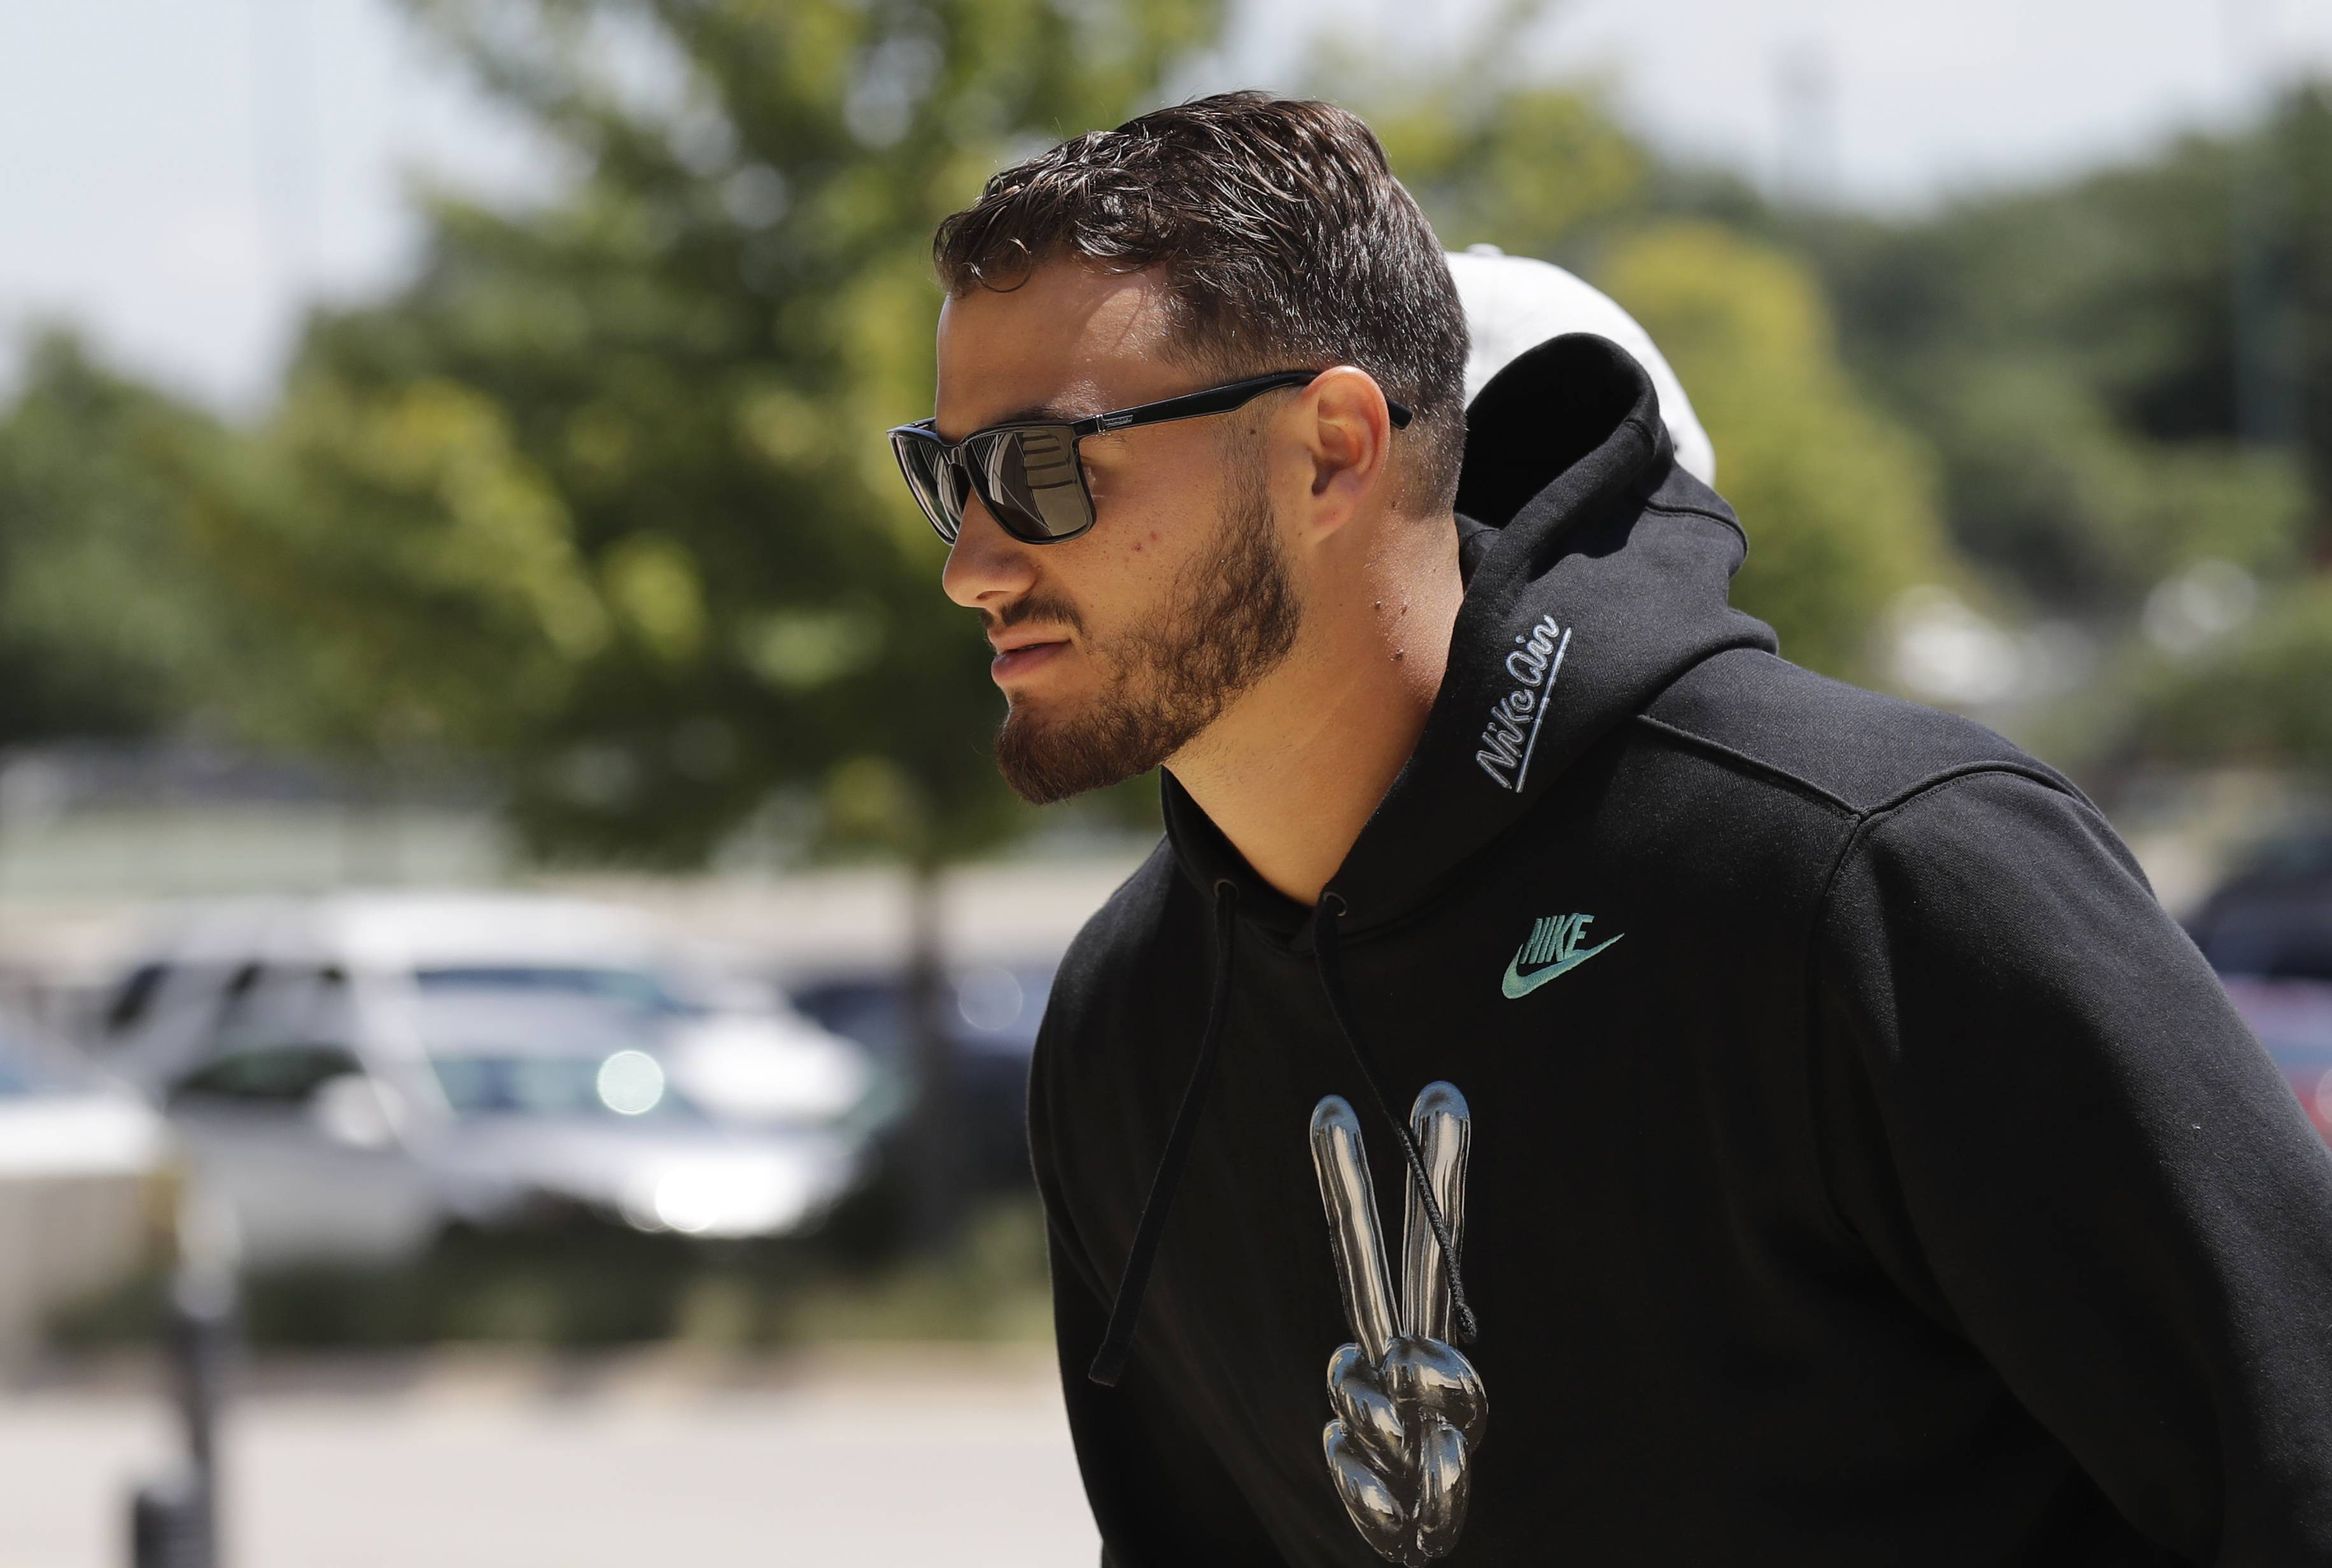 Assocaited Press Bears QB Mitch Trubisky has blinders on as he heads into his second training camp, and his first as the starter. Trubisky's tunnel vision is a good sign because he's blocking out all outside distractions so as to have a laser-like focus on his job as the Bears' franchise quarterback